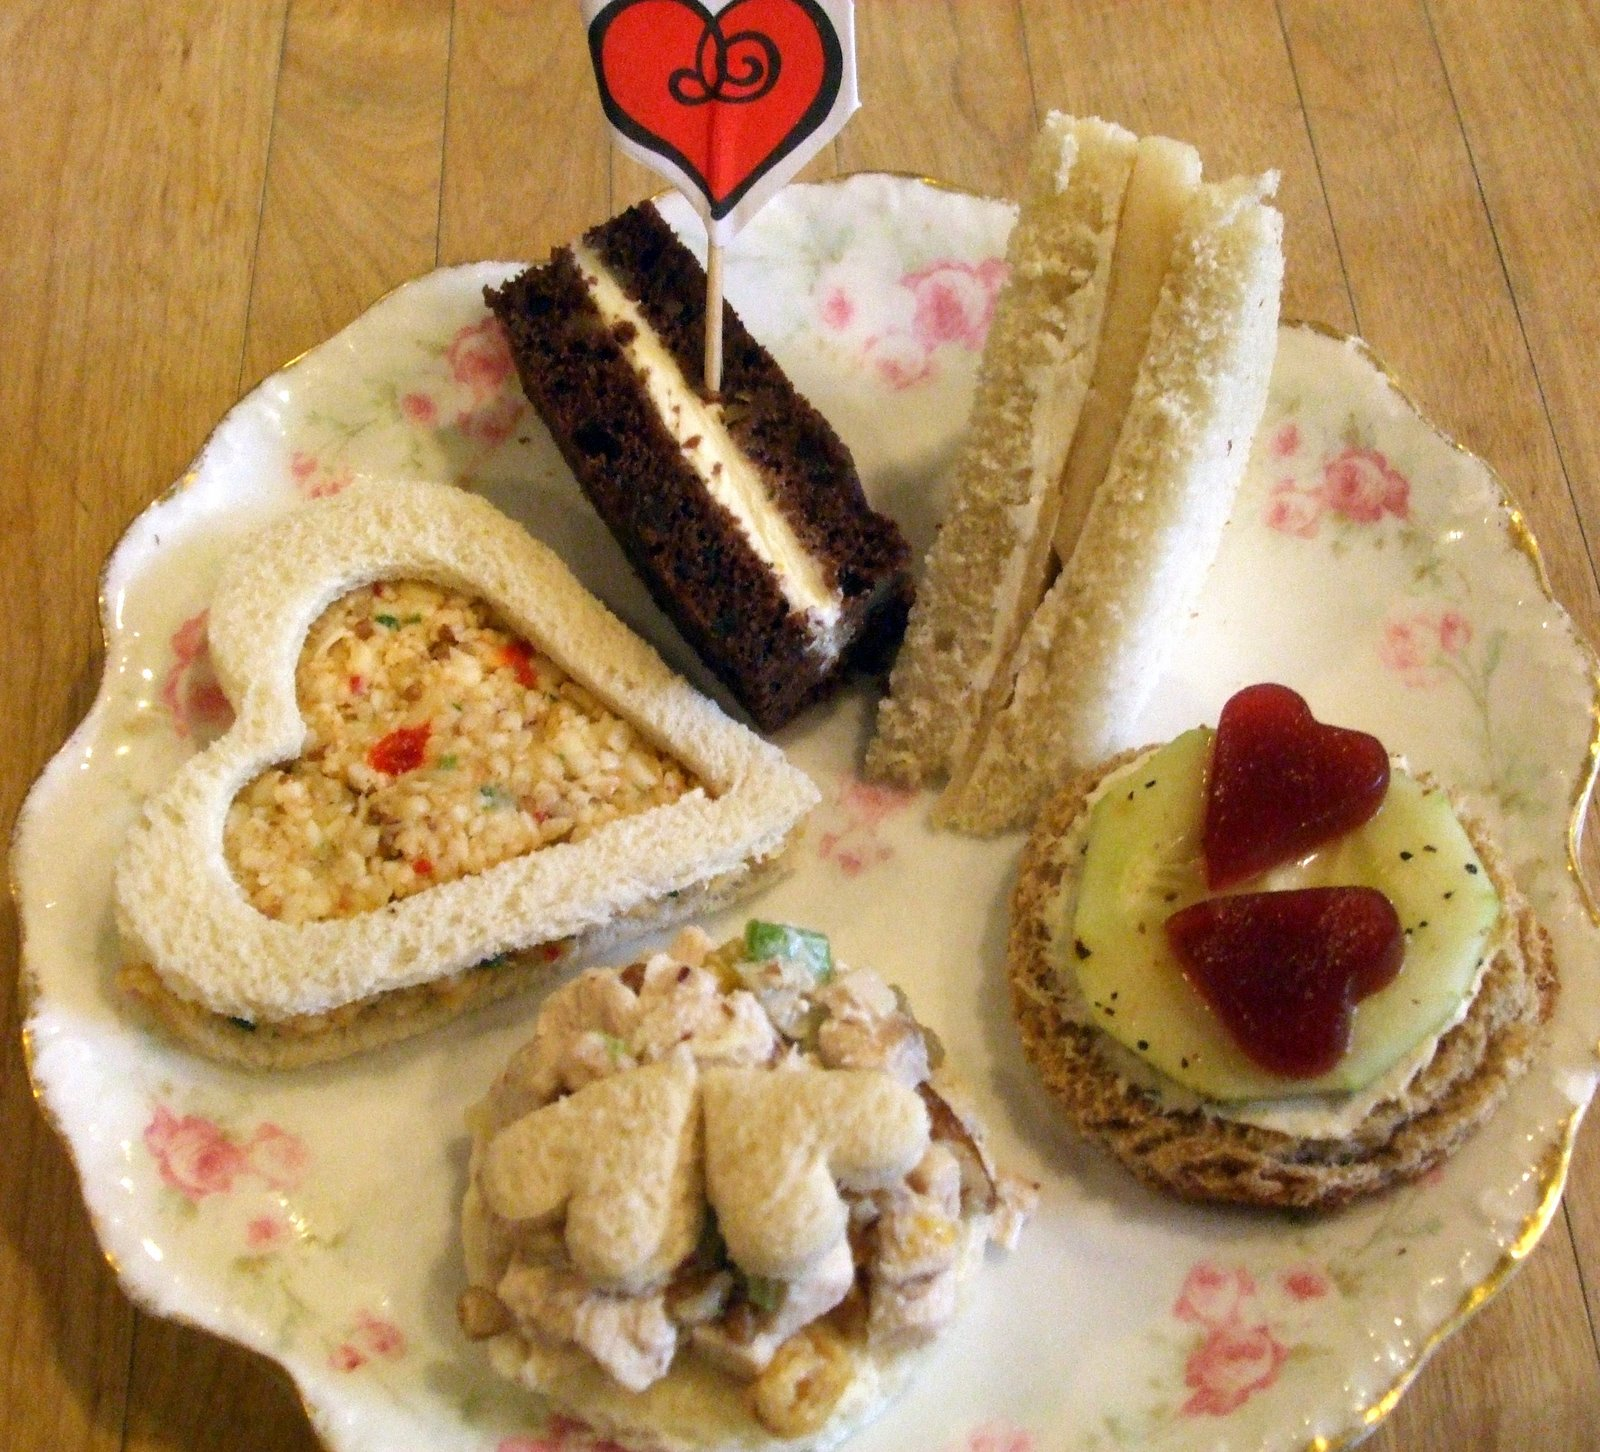 Oven fresh scones included Traditional English Cream and heart shaped ...